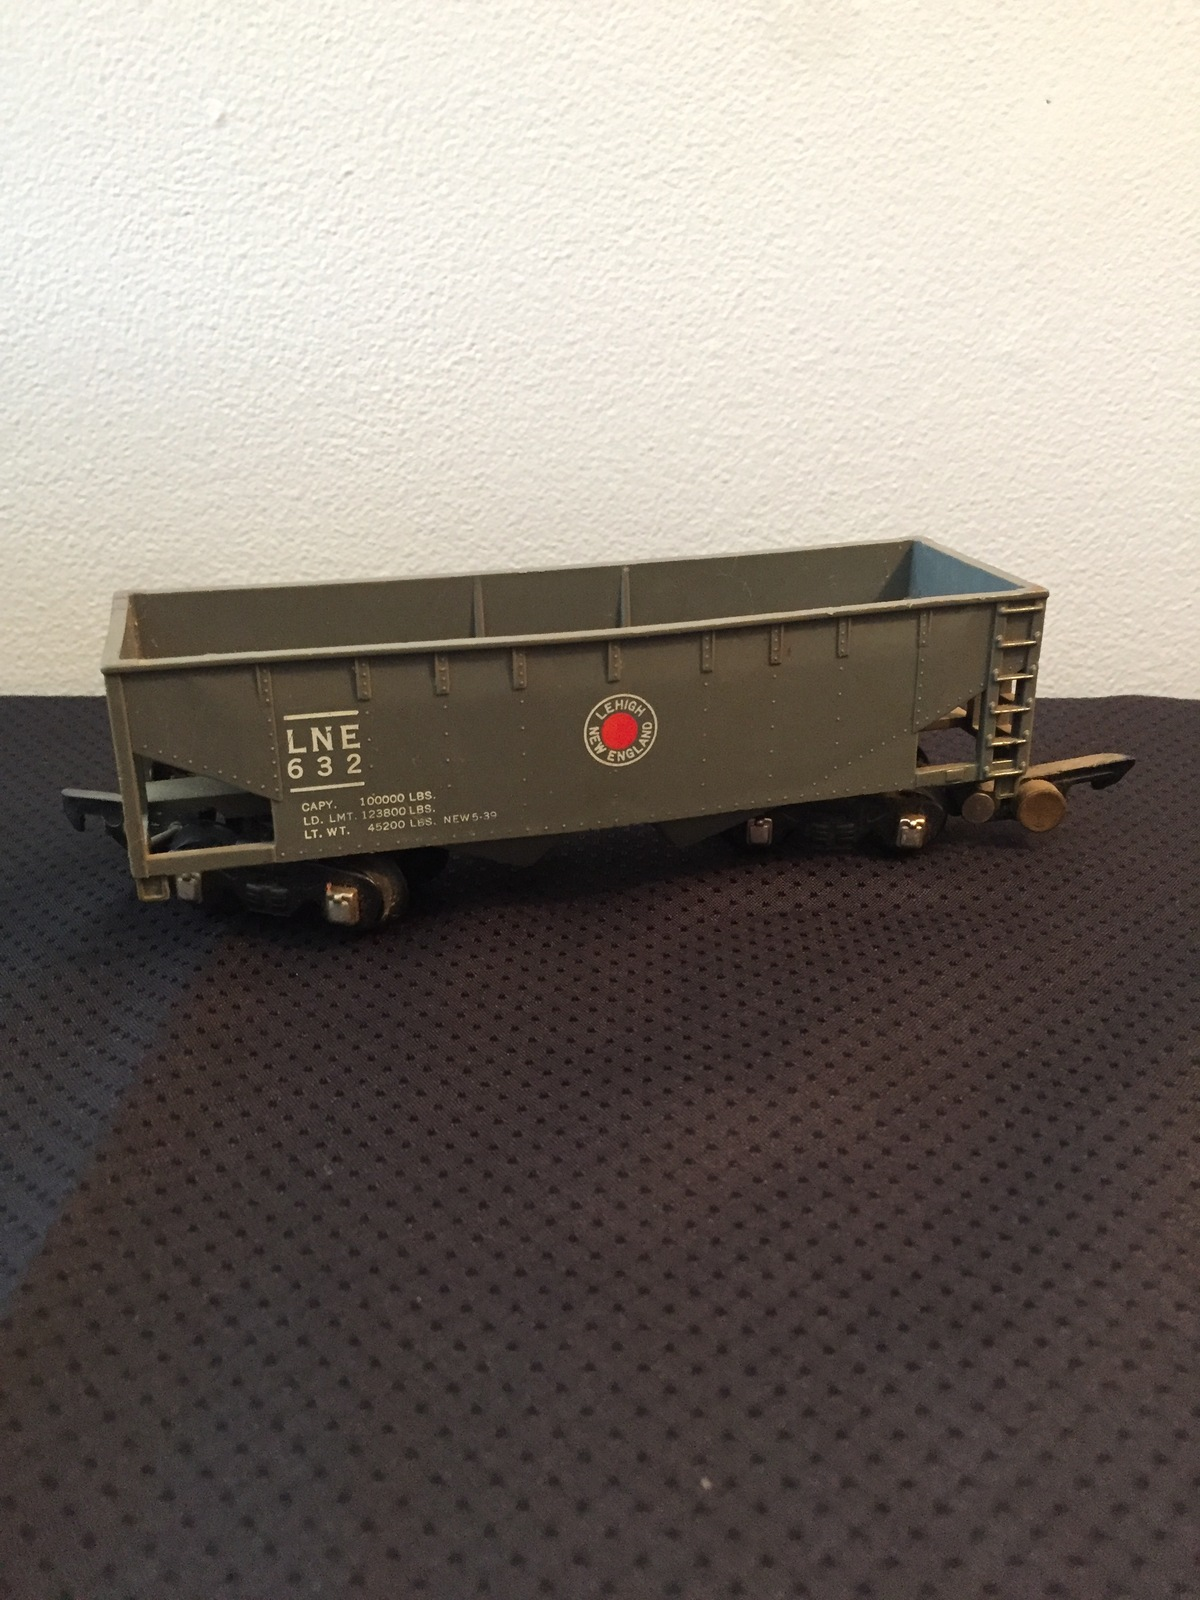 American Flyer Railroad Car #632 - LNE (Lehigh New England) grey hopper car